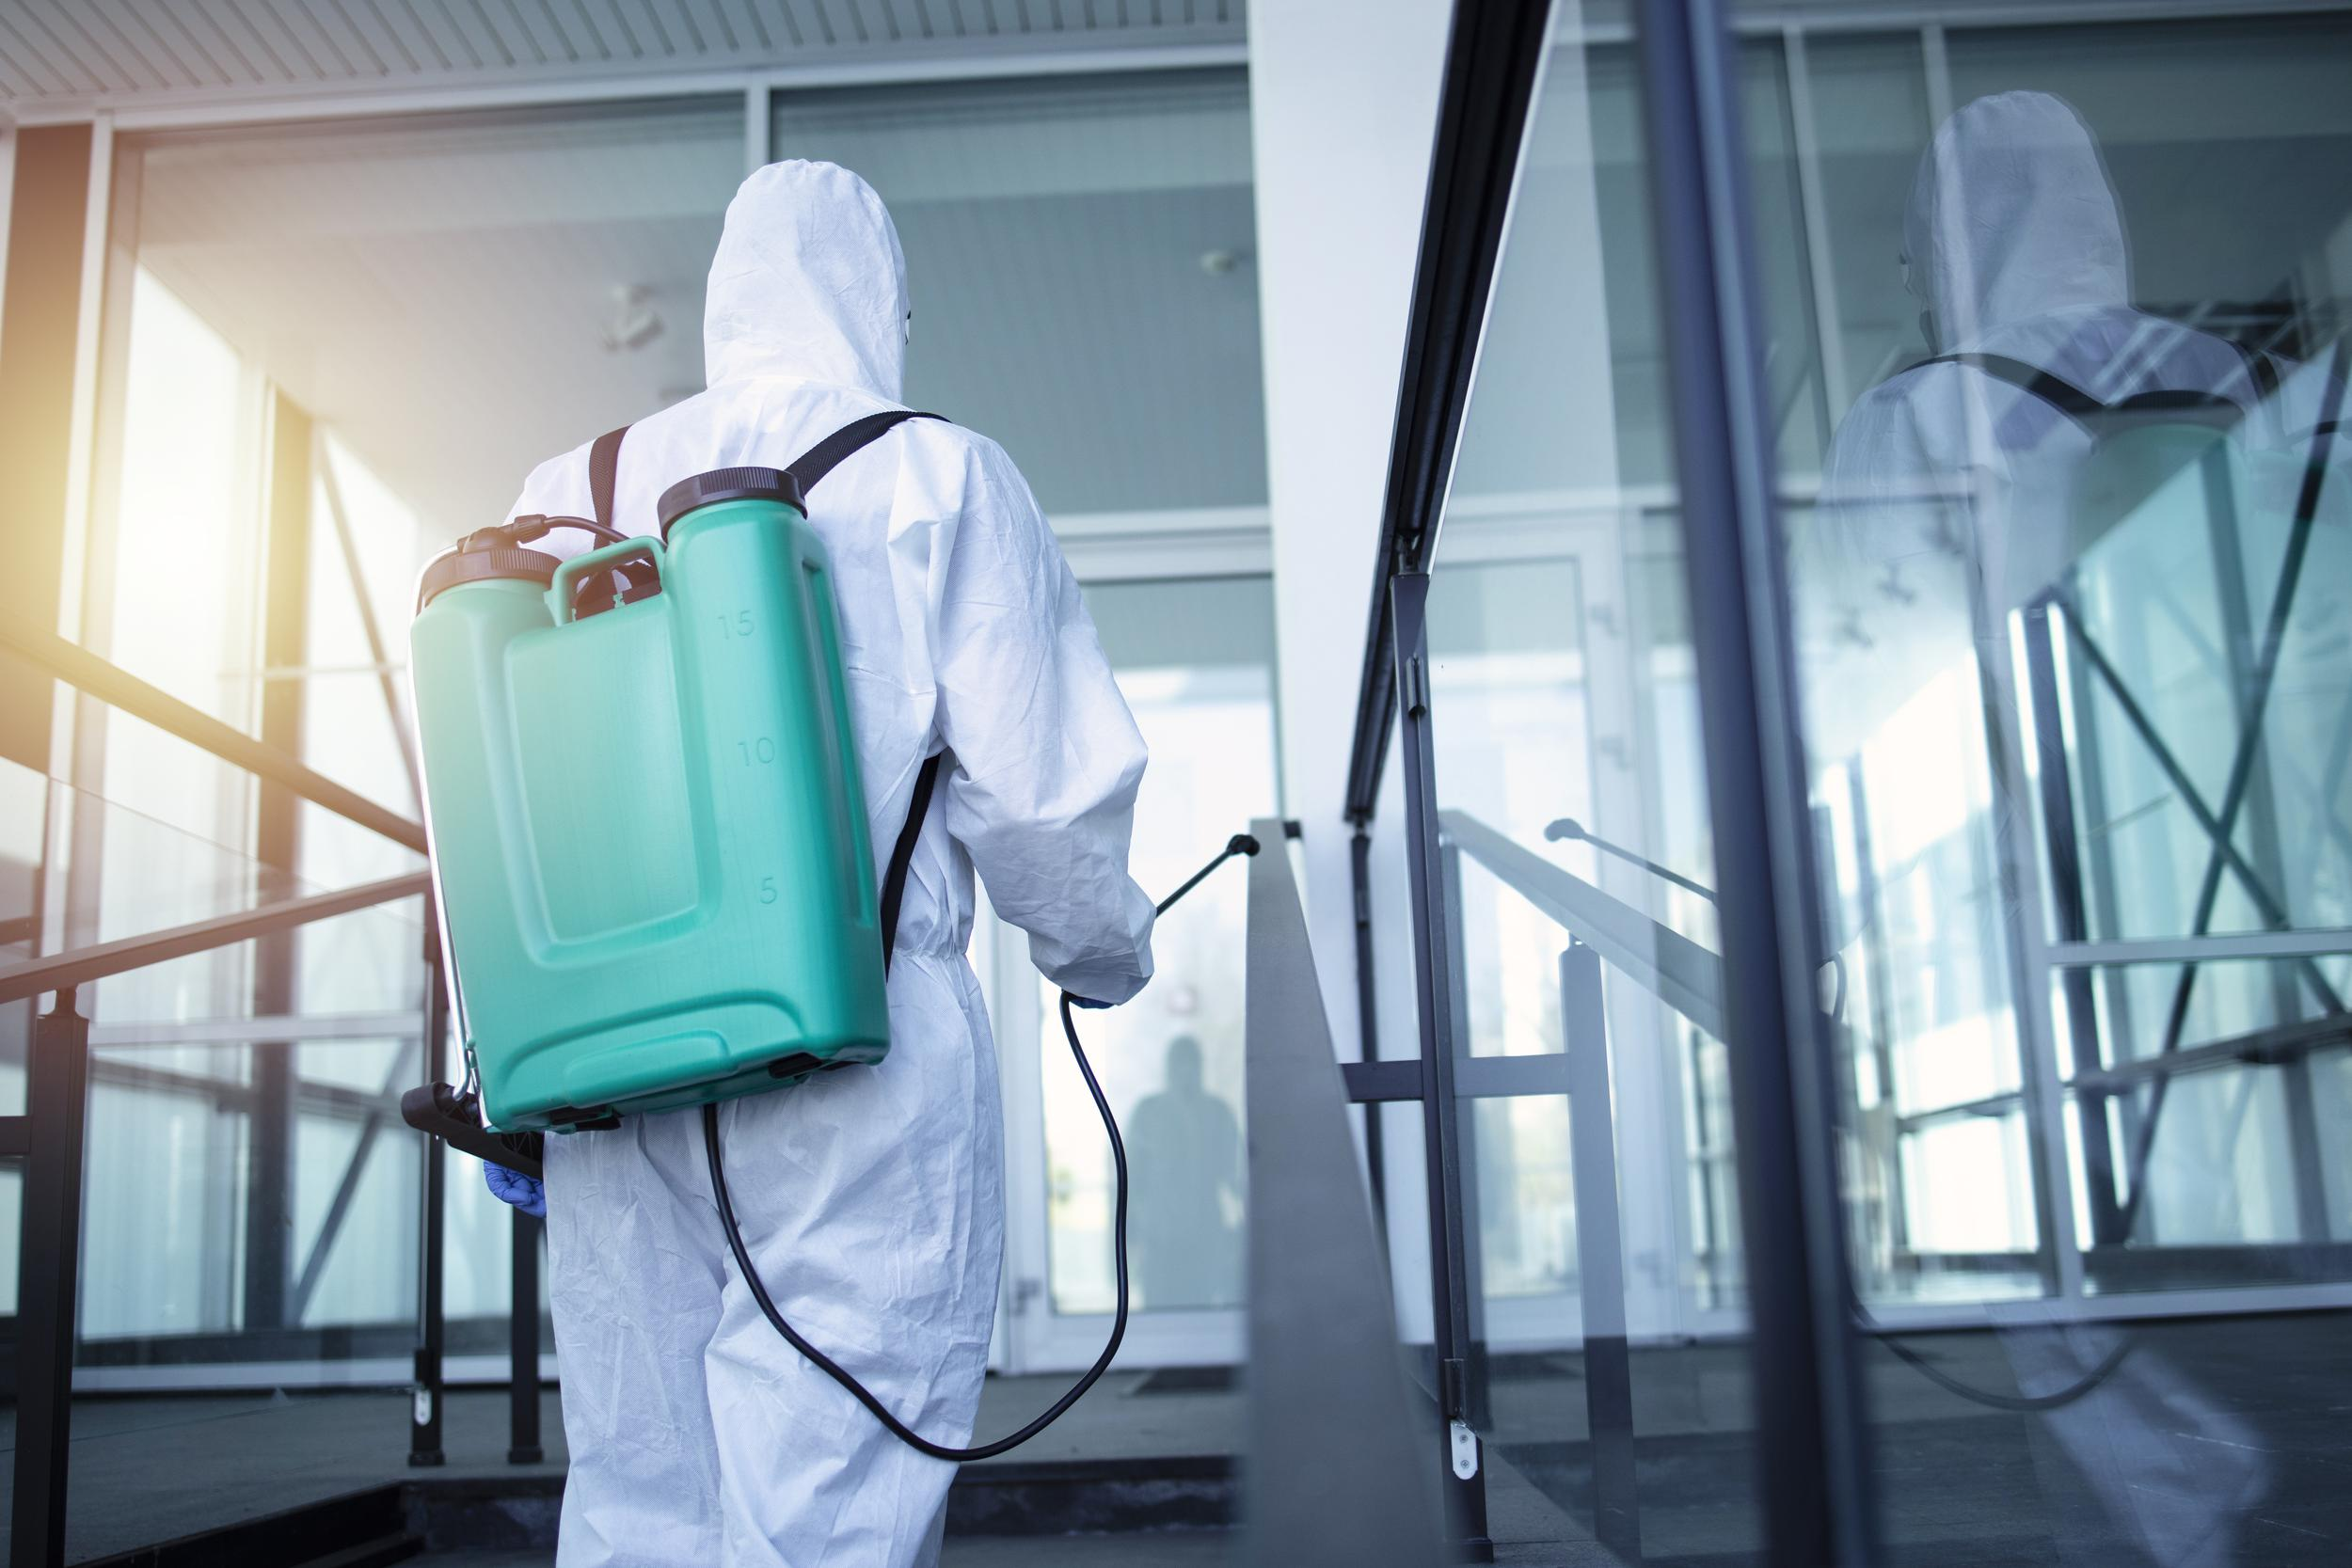 Commercial COVID-19 disinfection services.